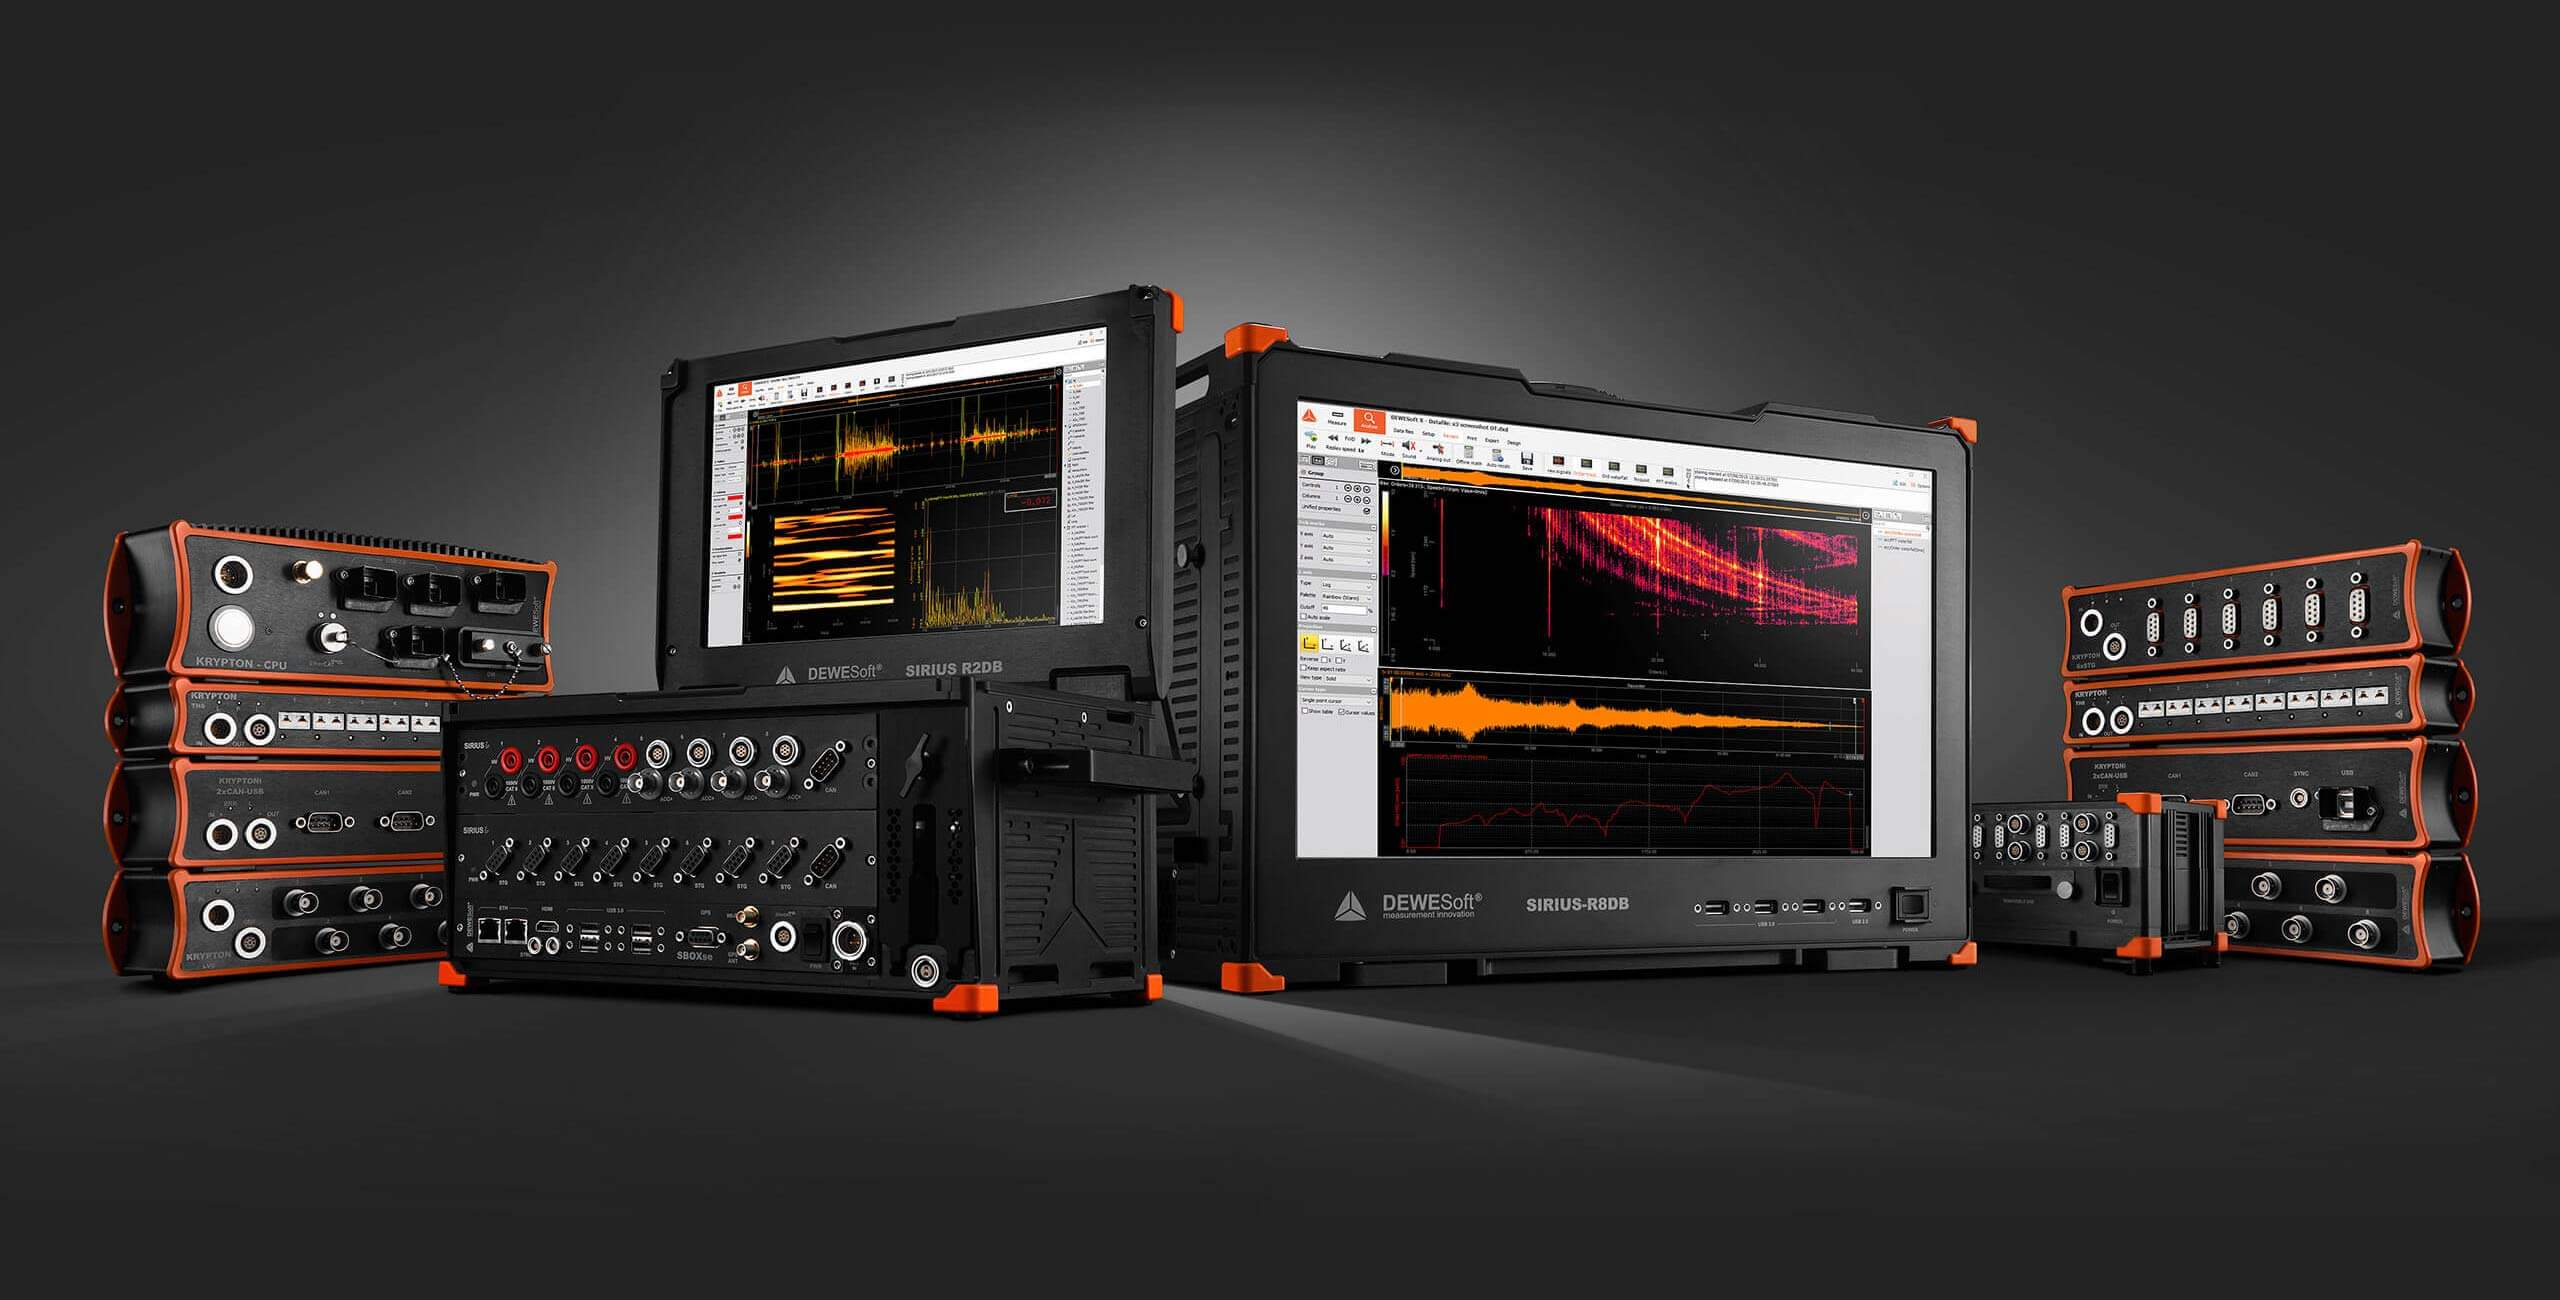 Dewesoft high-end data acquisition (DAQ) systems